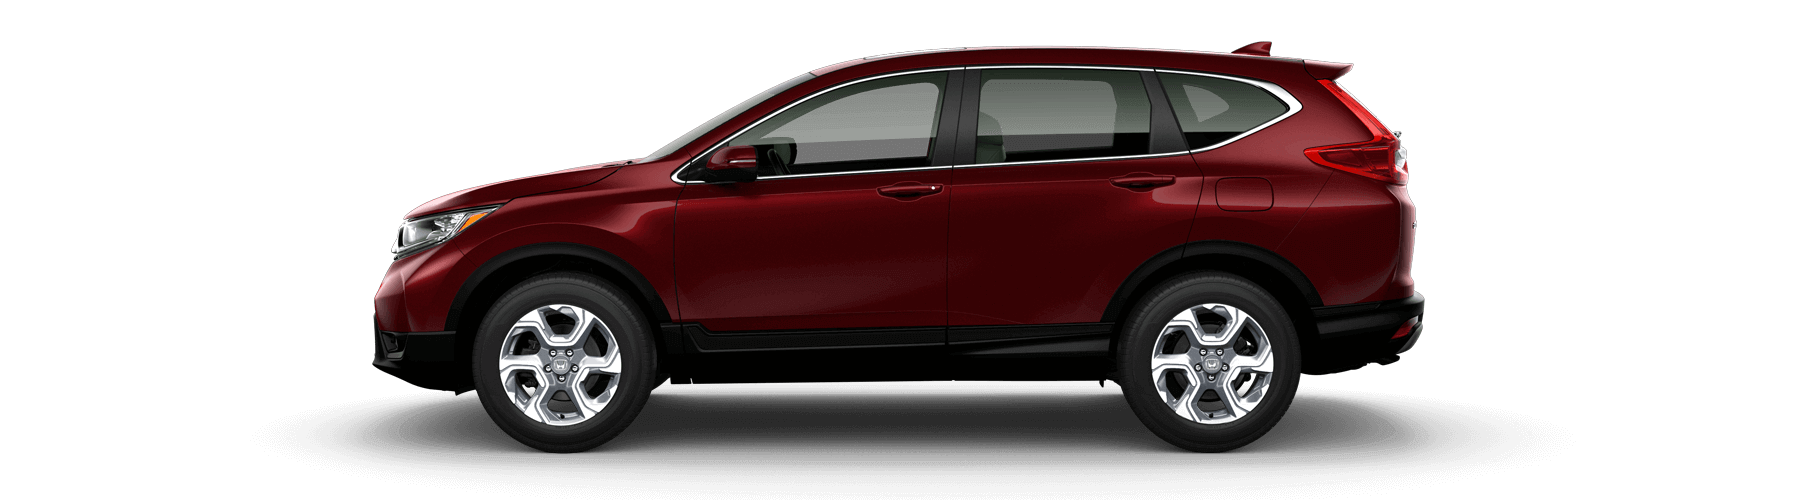 2017 Honda CR-V Side Profile